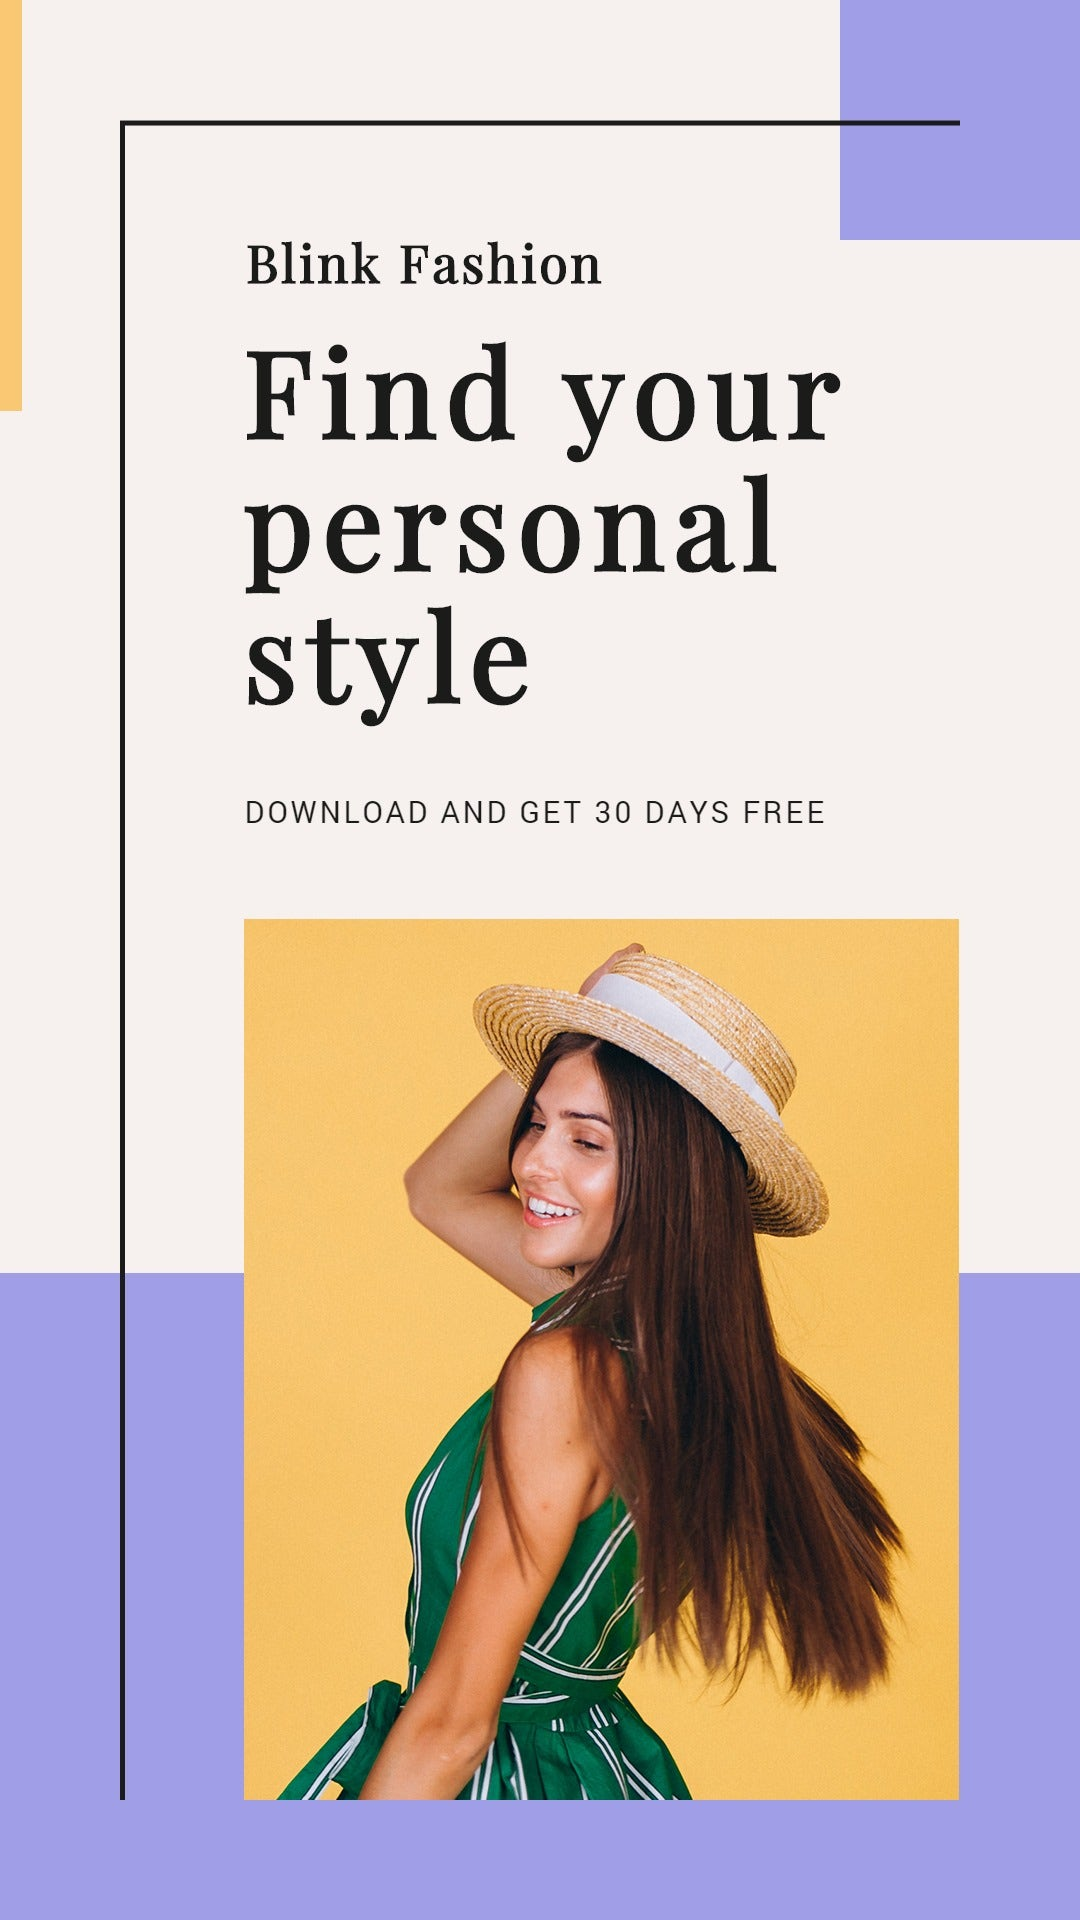 Fashion Brands App Promotion Instagram Story Template